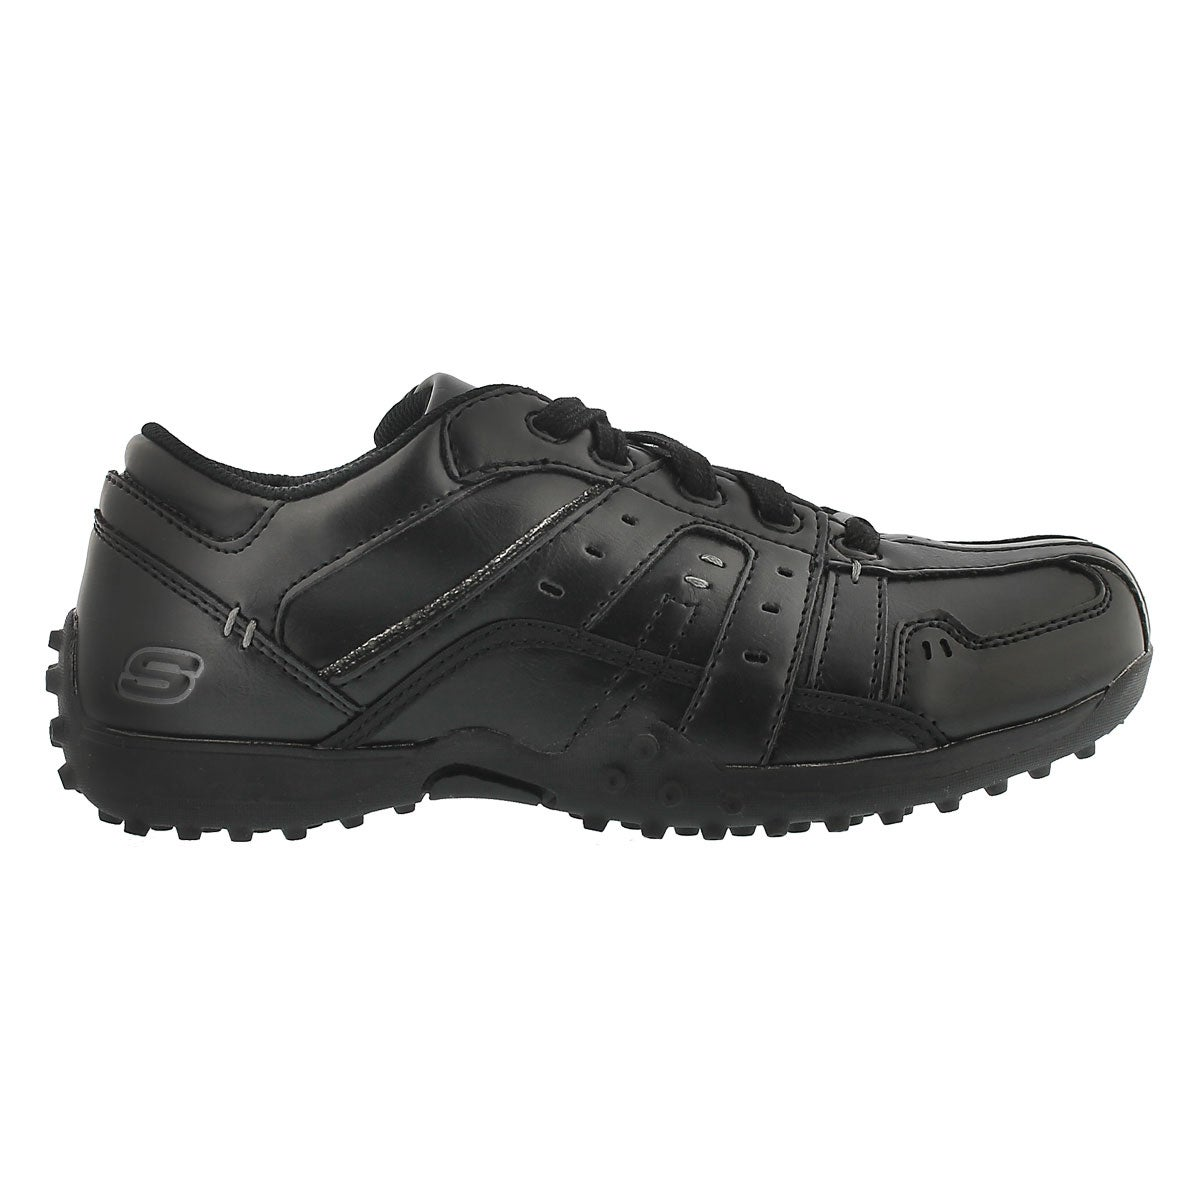 Boys Wieland black casual shoe